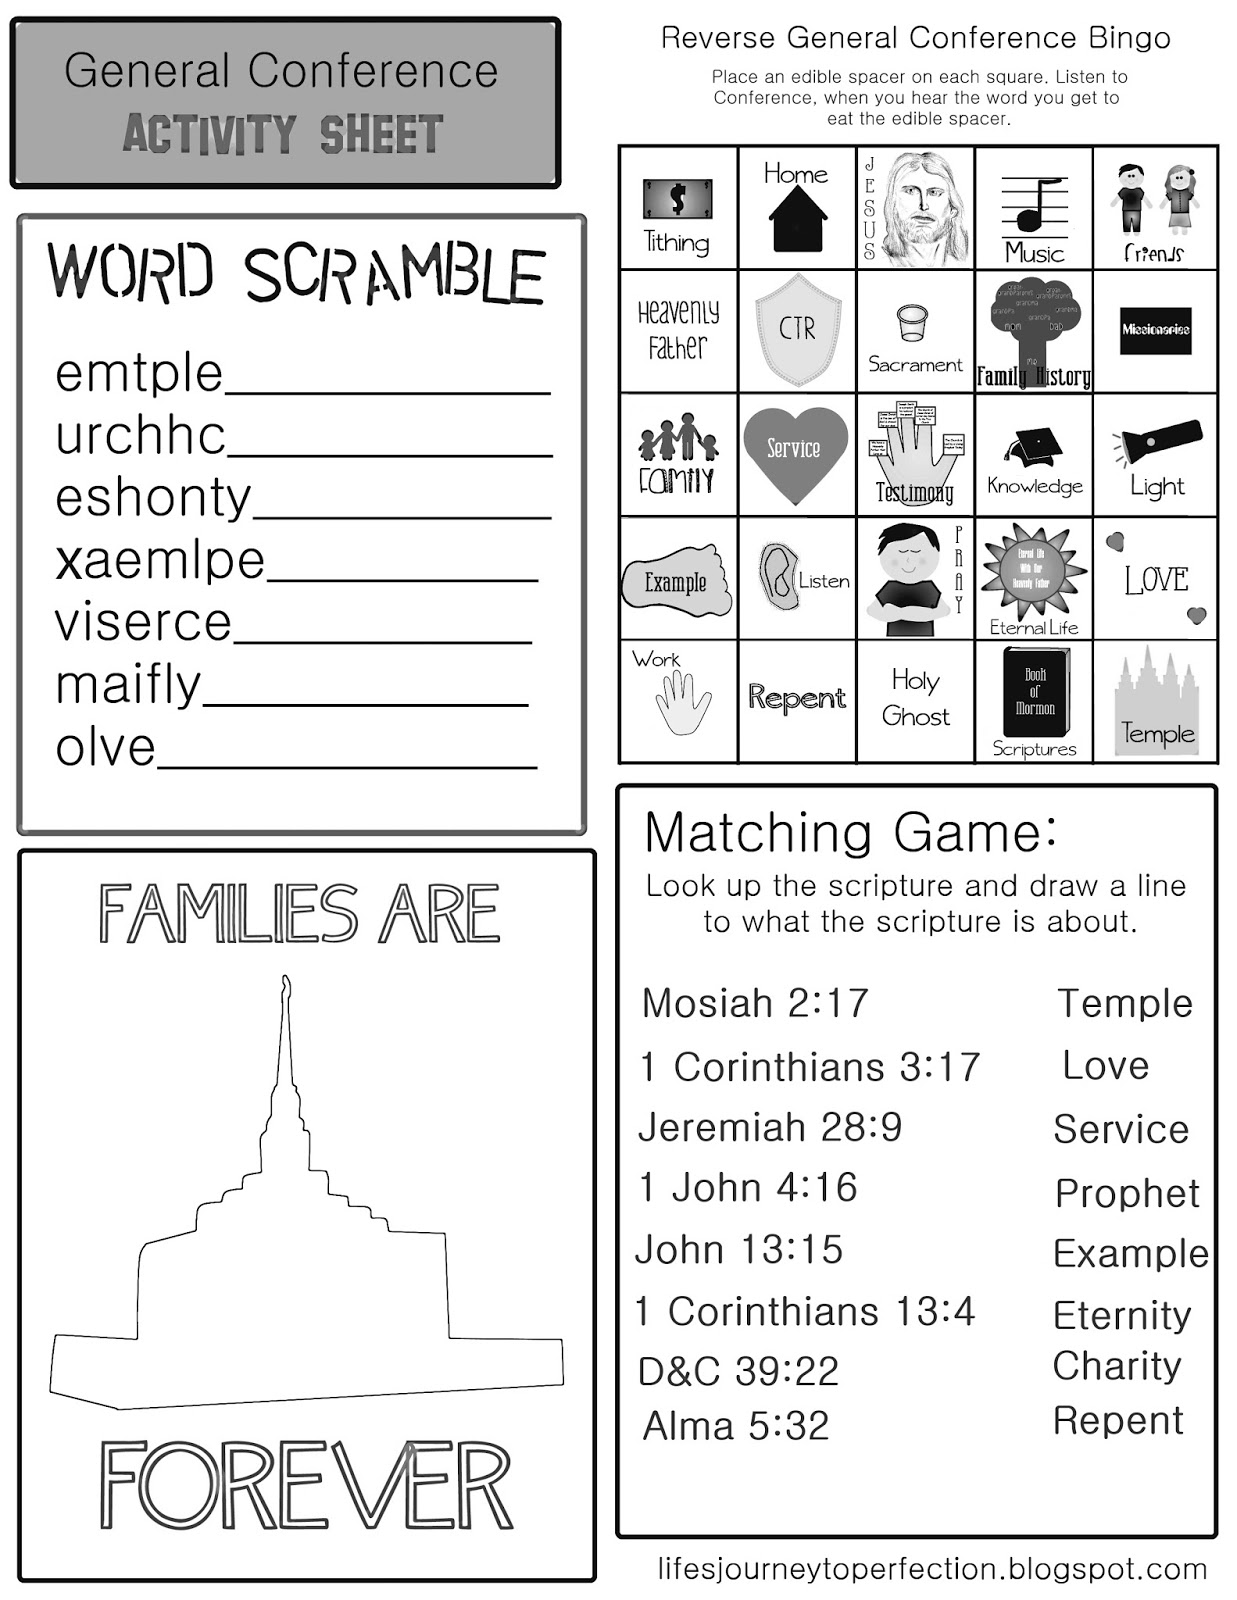 general conference activity sheet black and white version